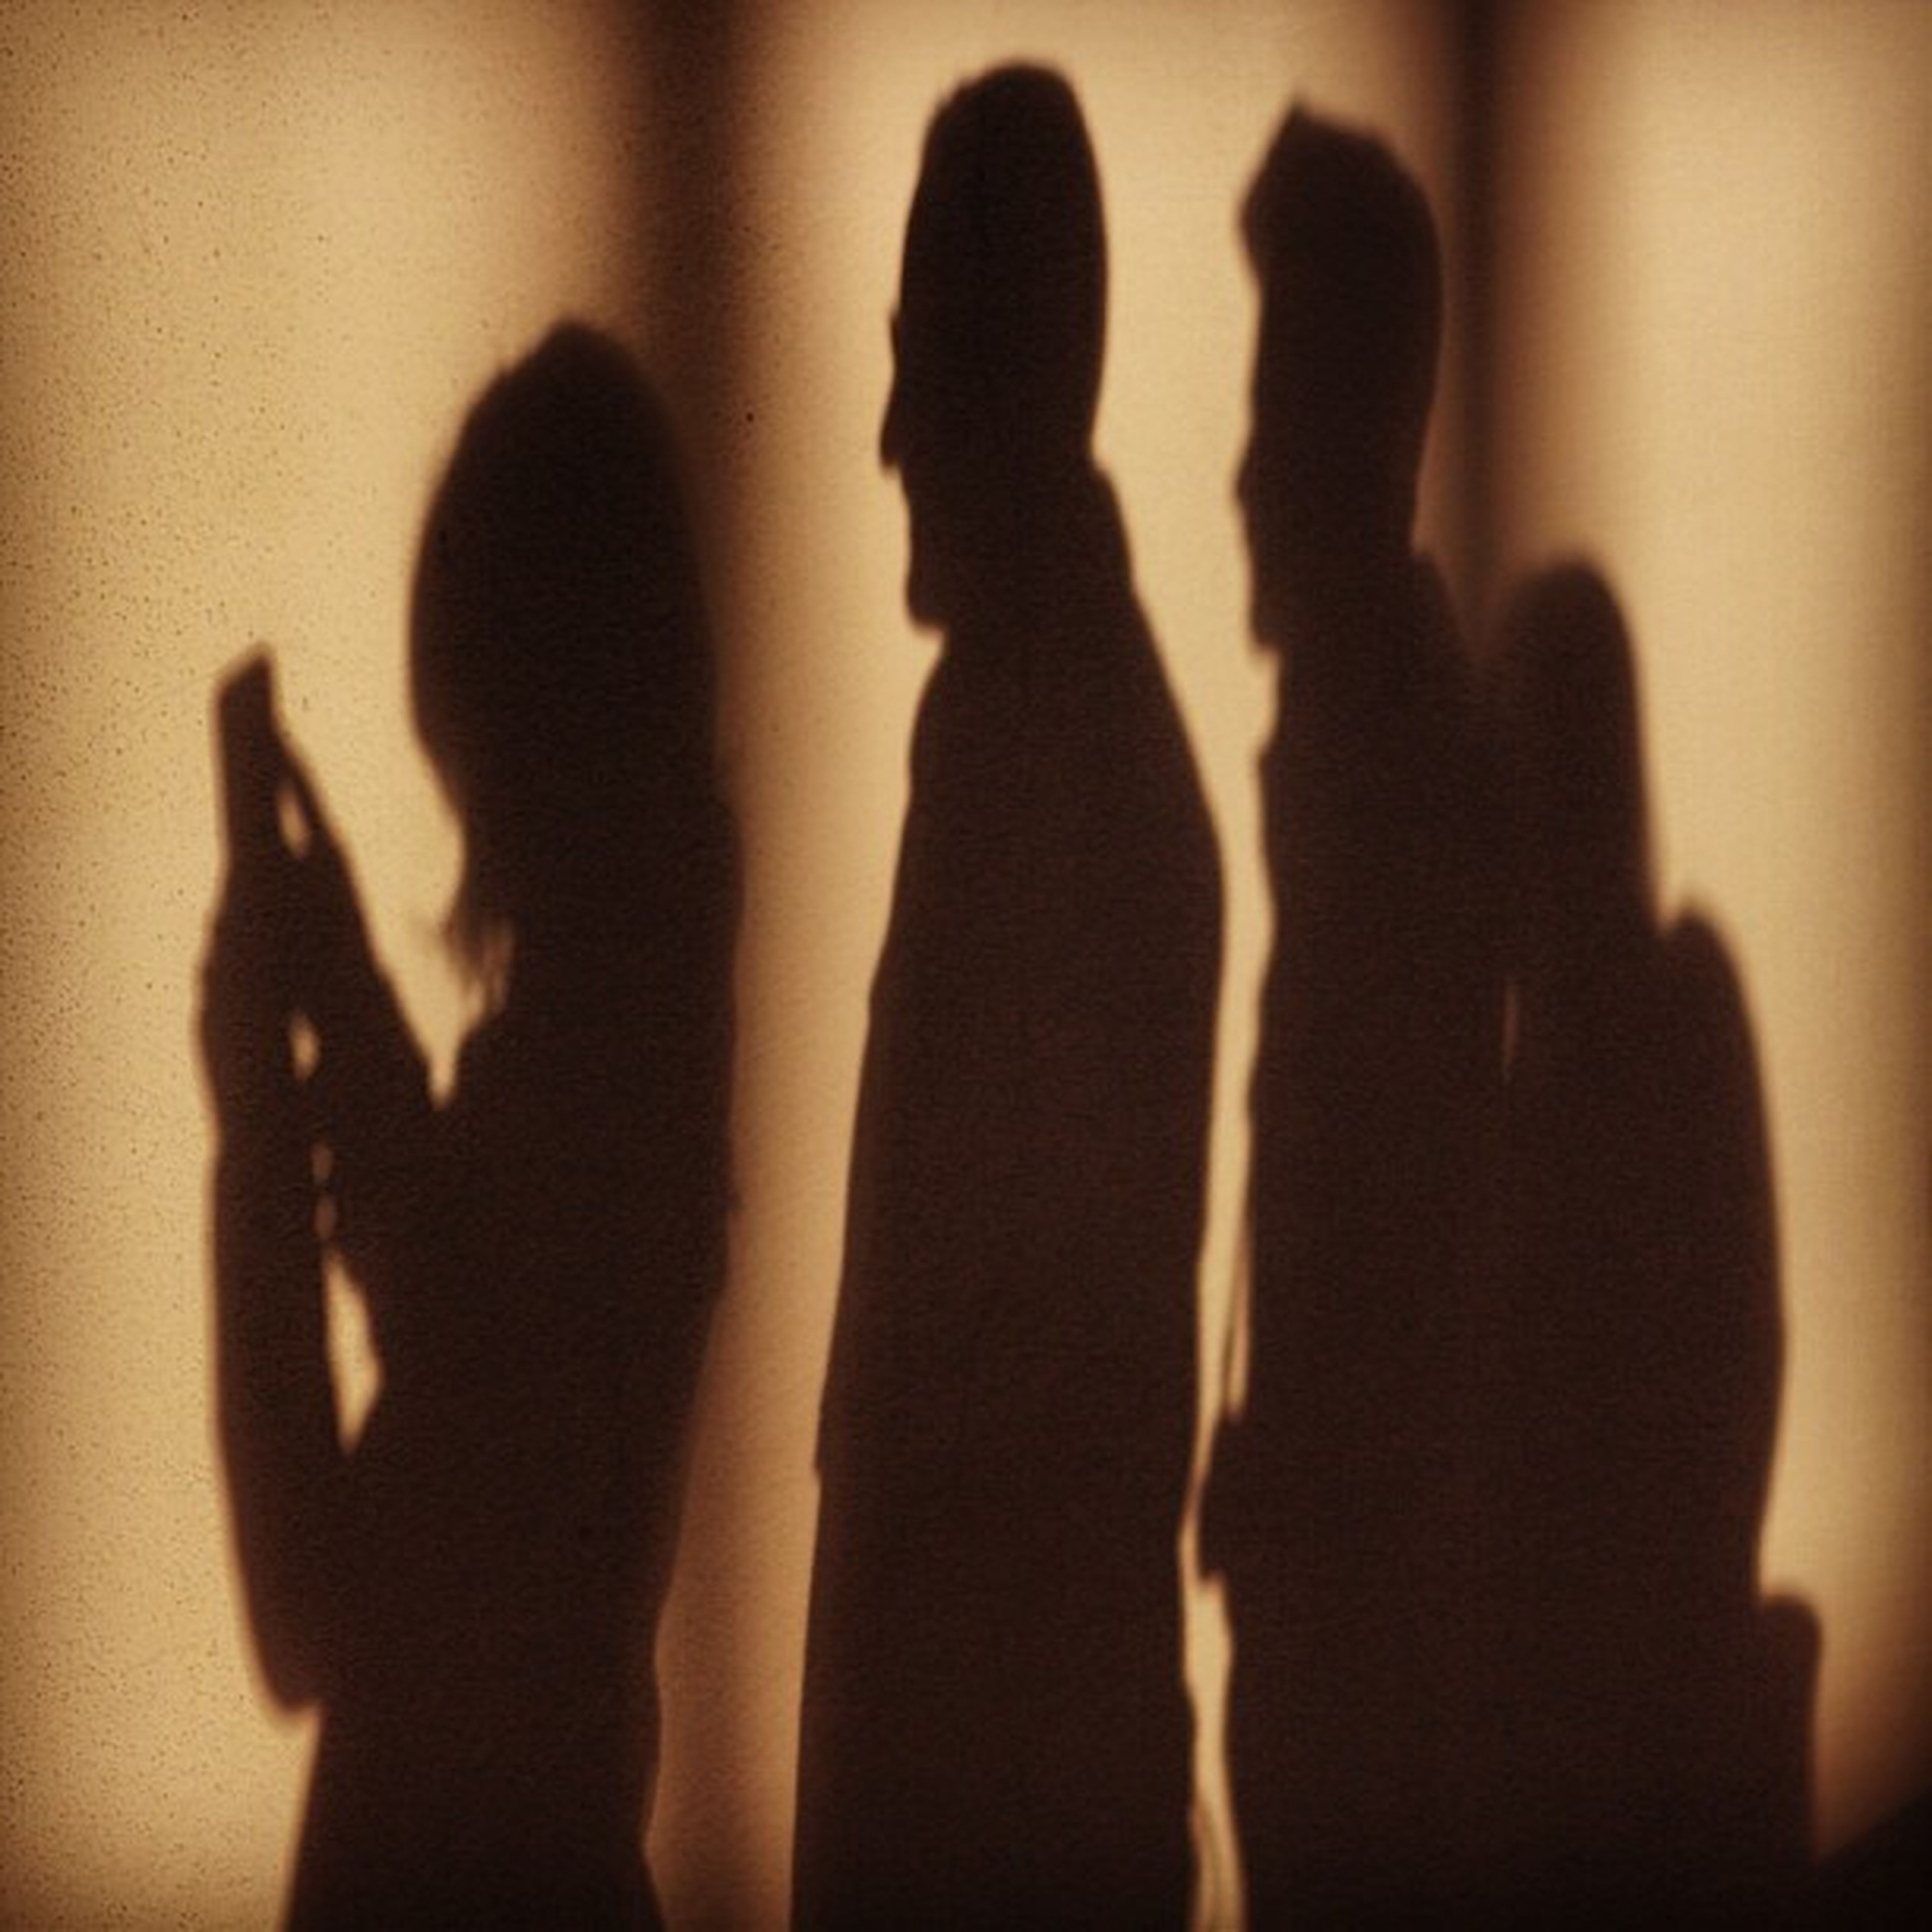 togetherness, lifestyles, indoors, leisure activity, silhouette, person, bonding, men, love, enjoyment, arts culture and entertainment, standing, music, friendship, three quarter length, arms raised, fun, shadow